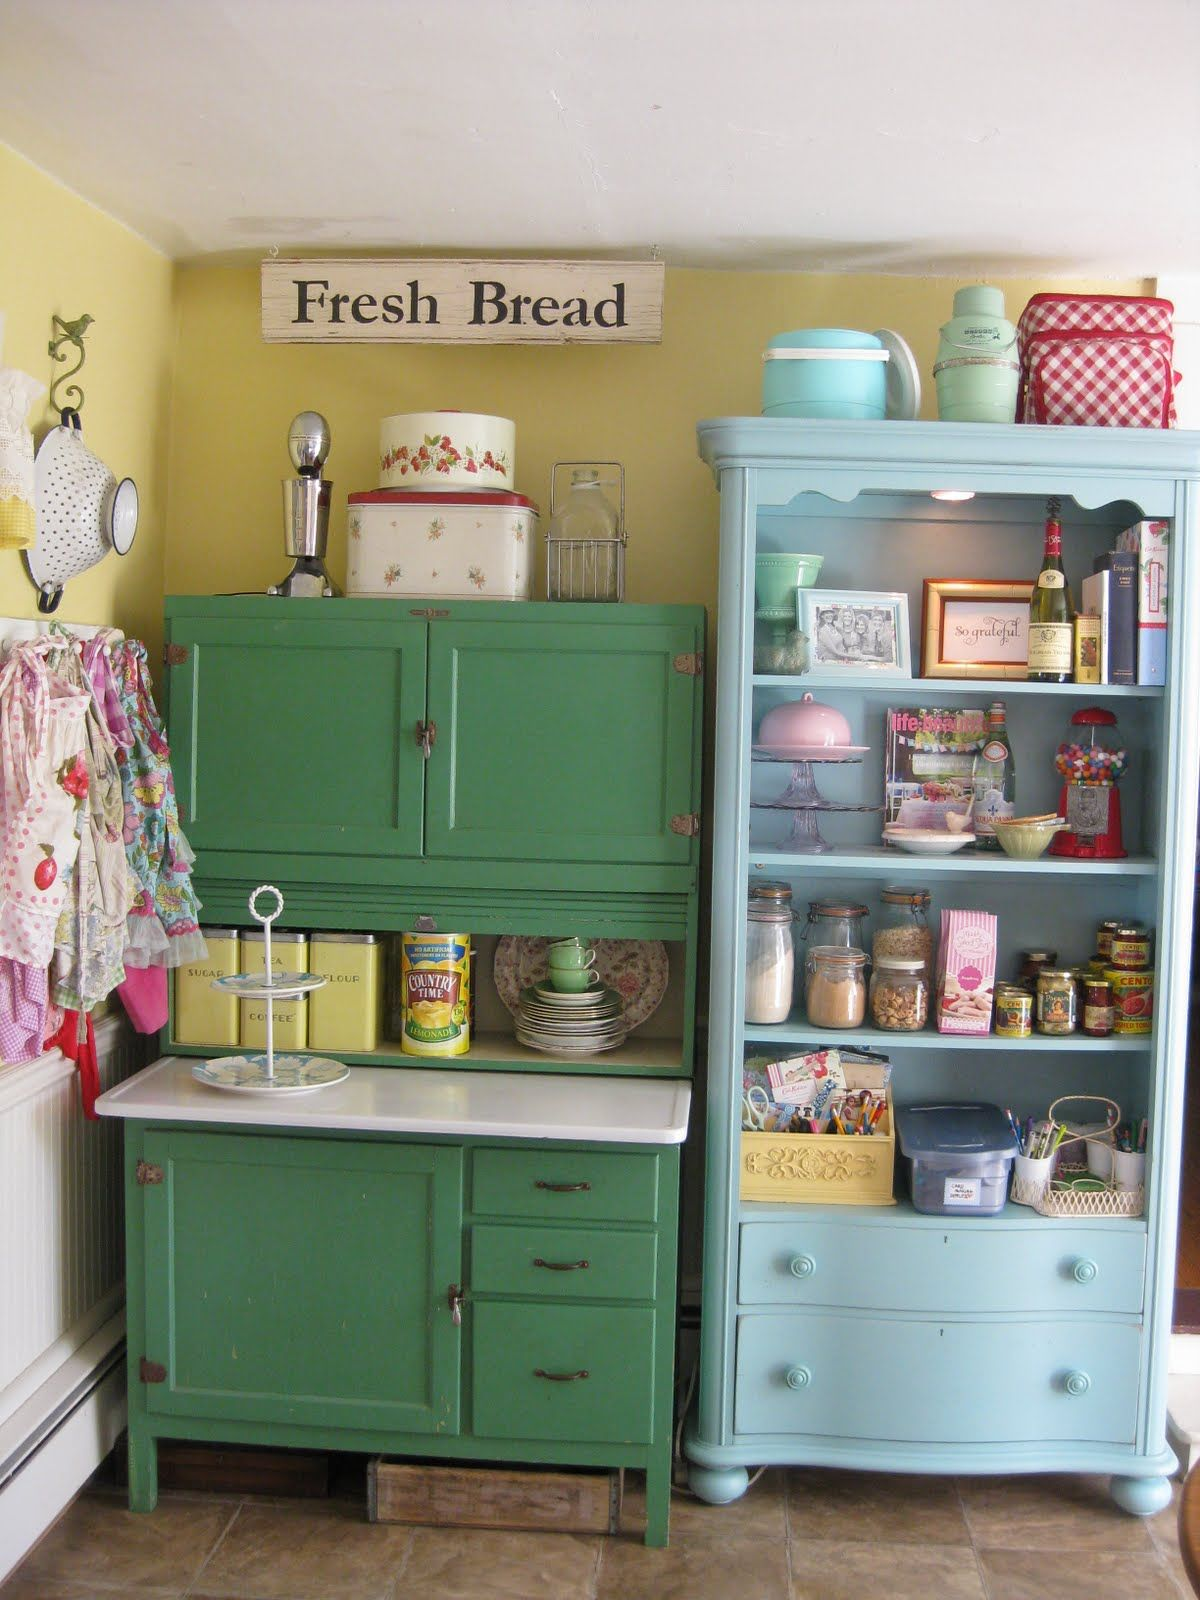 Colorful Vintage Kitchen Storage Ideas Pictures, Photos, and Images